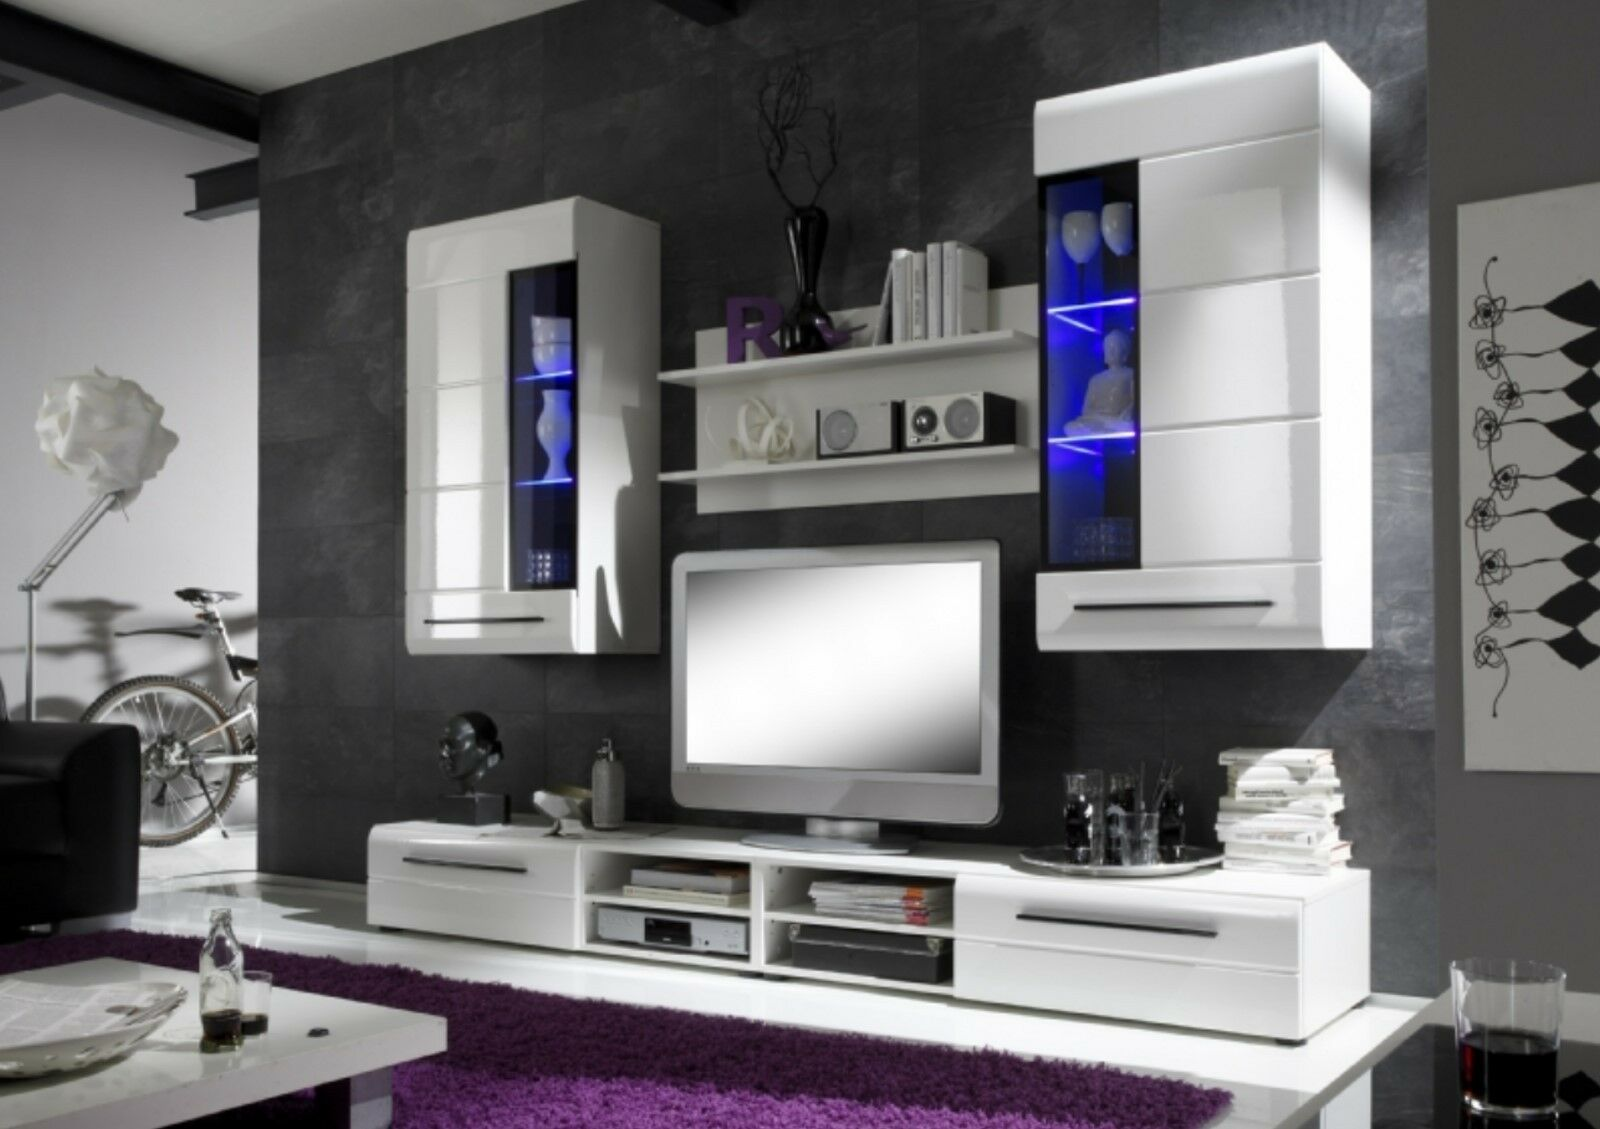 led wohnwand beta trend wohnzimmer schrankwand tv m bel anbauwand wei hochglanz eur 299 95. Black Bedroom Furniture Sets. Home Design Ideas